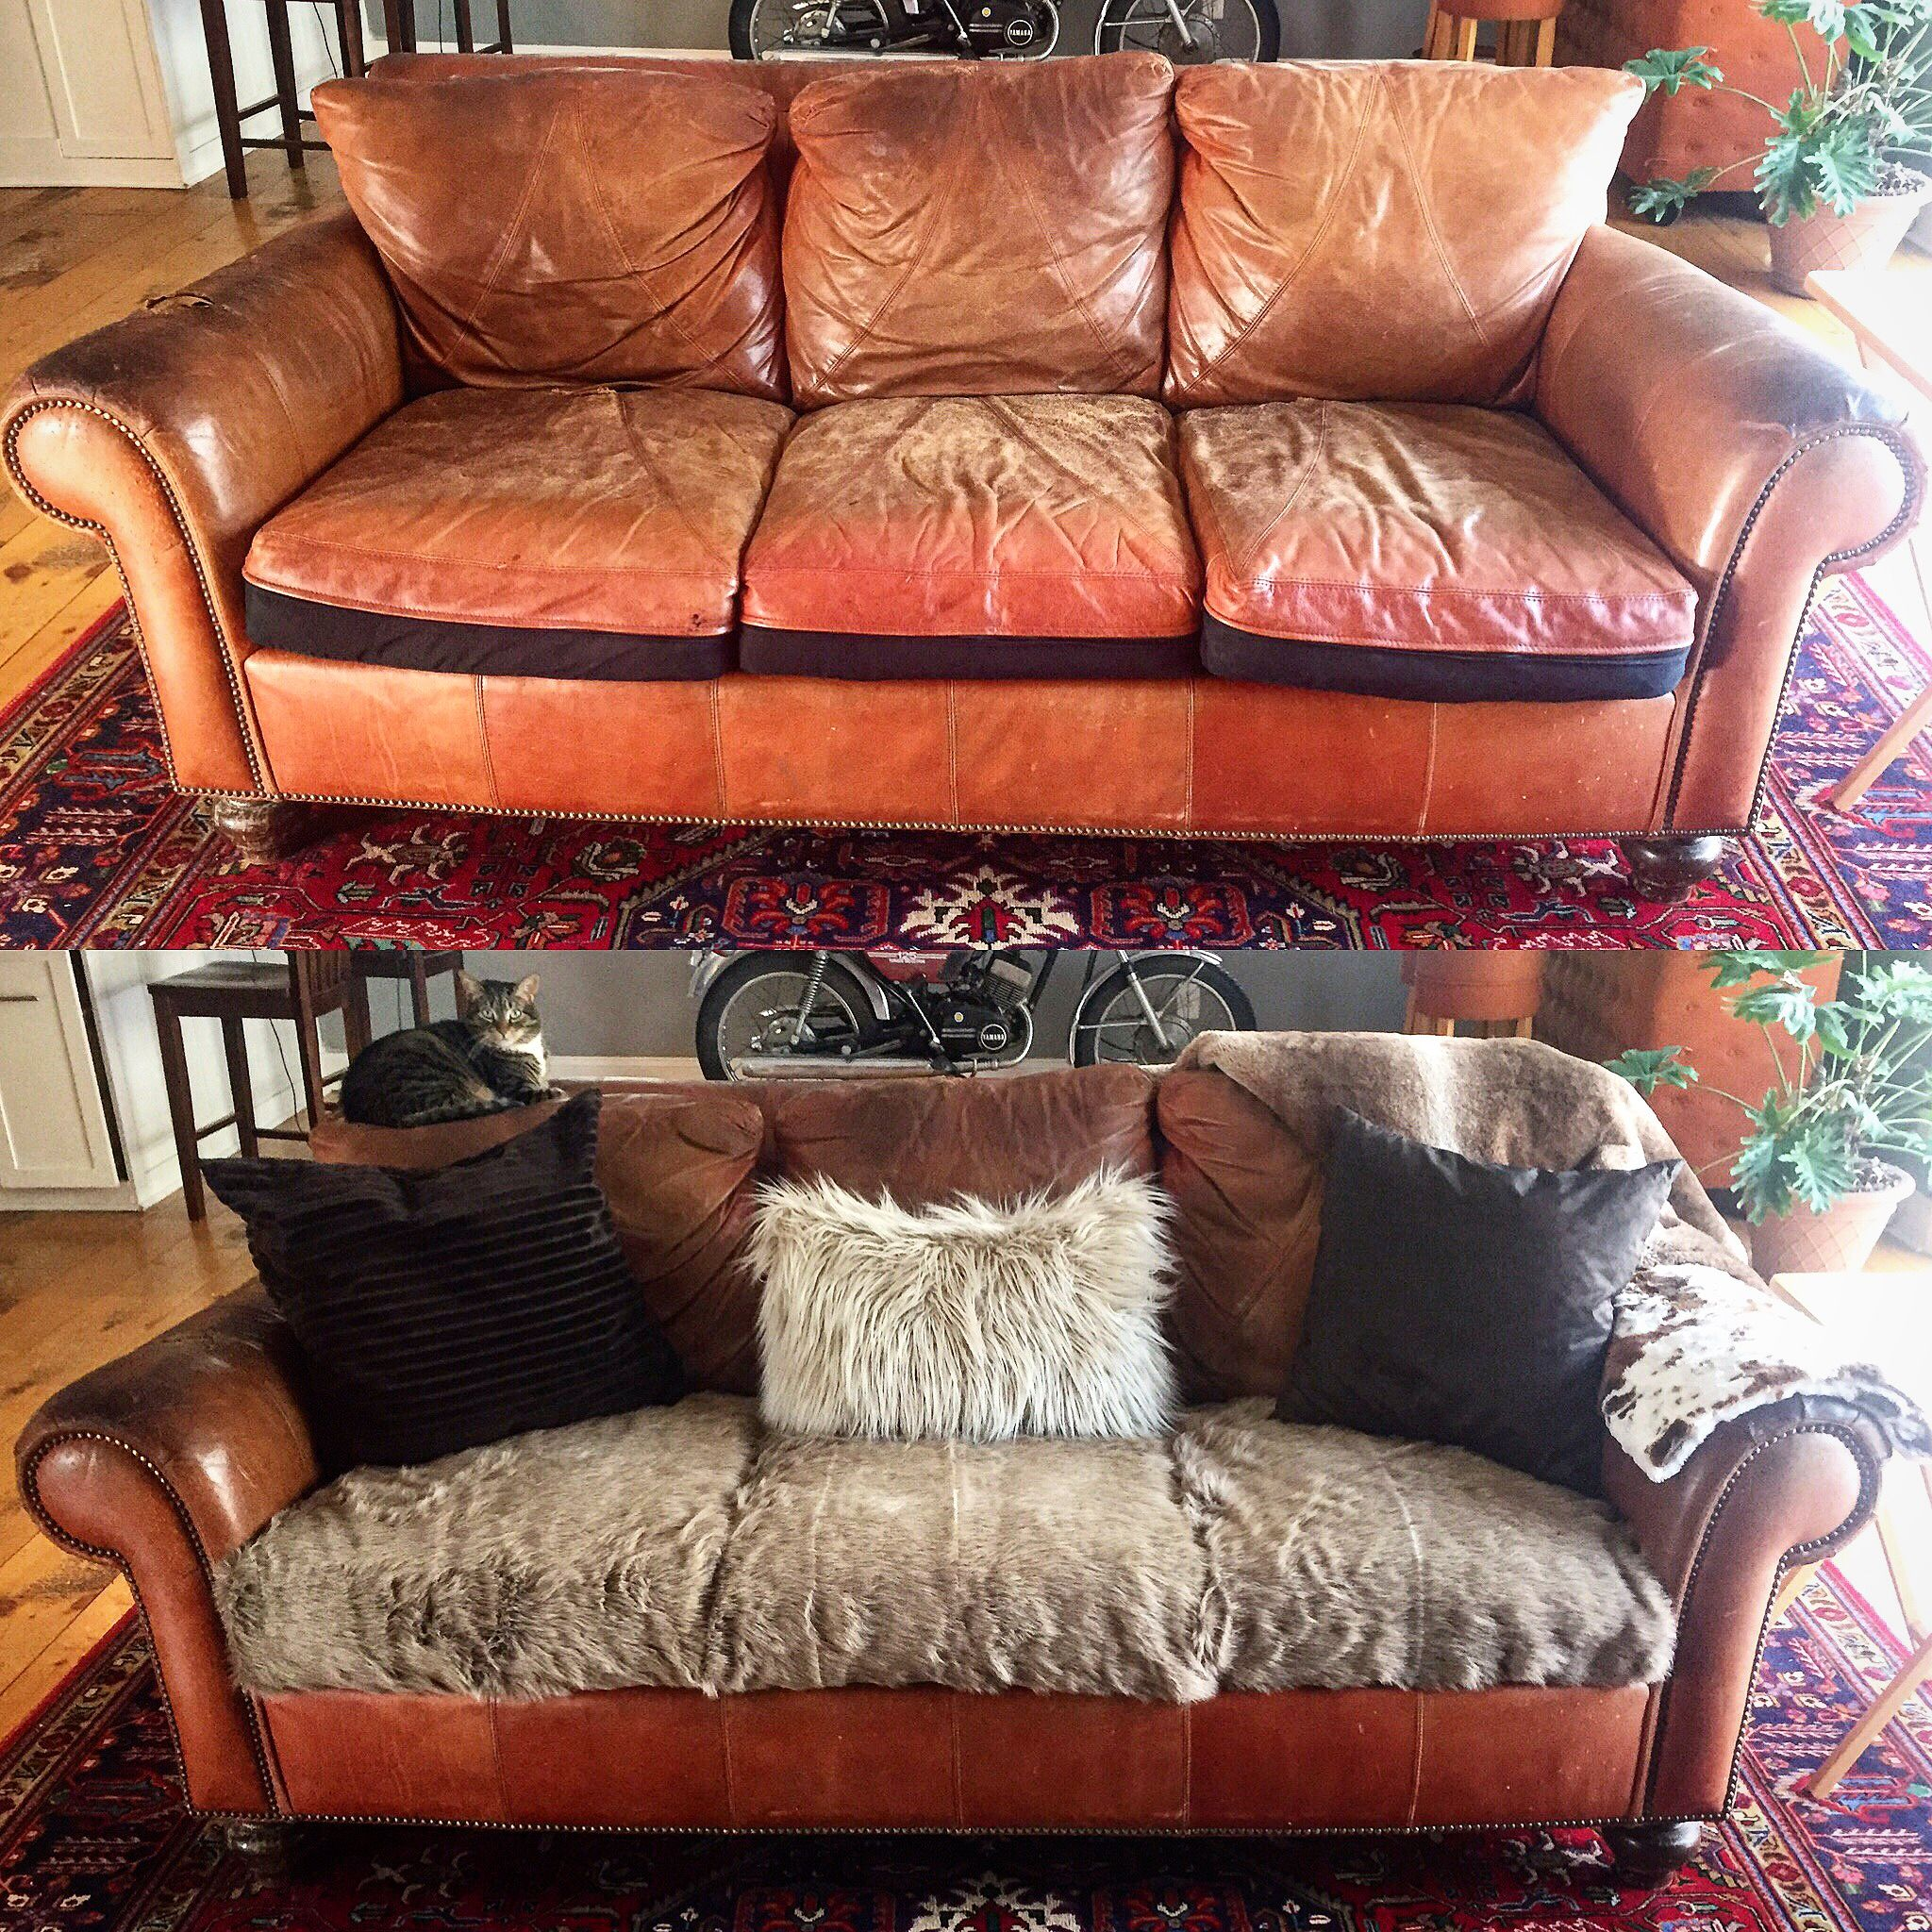 Couch Makeover Recovered Cushions Vintage Leather Faux Fur Furniture Revival